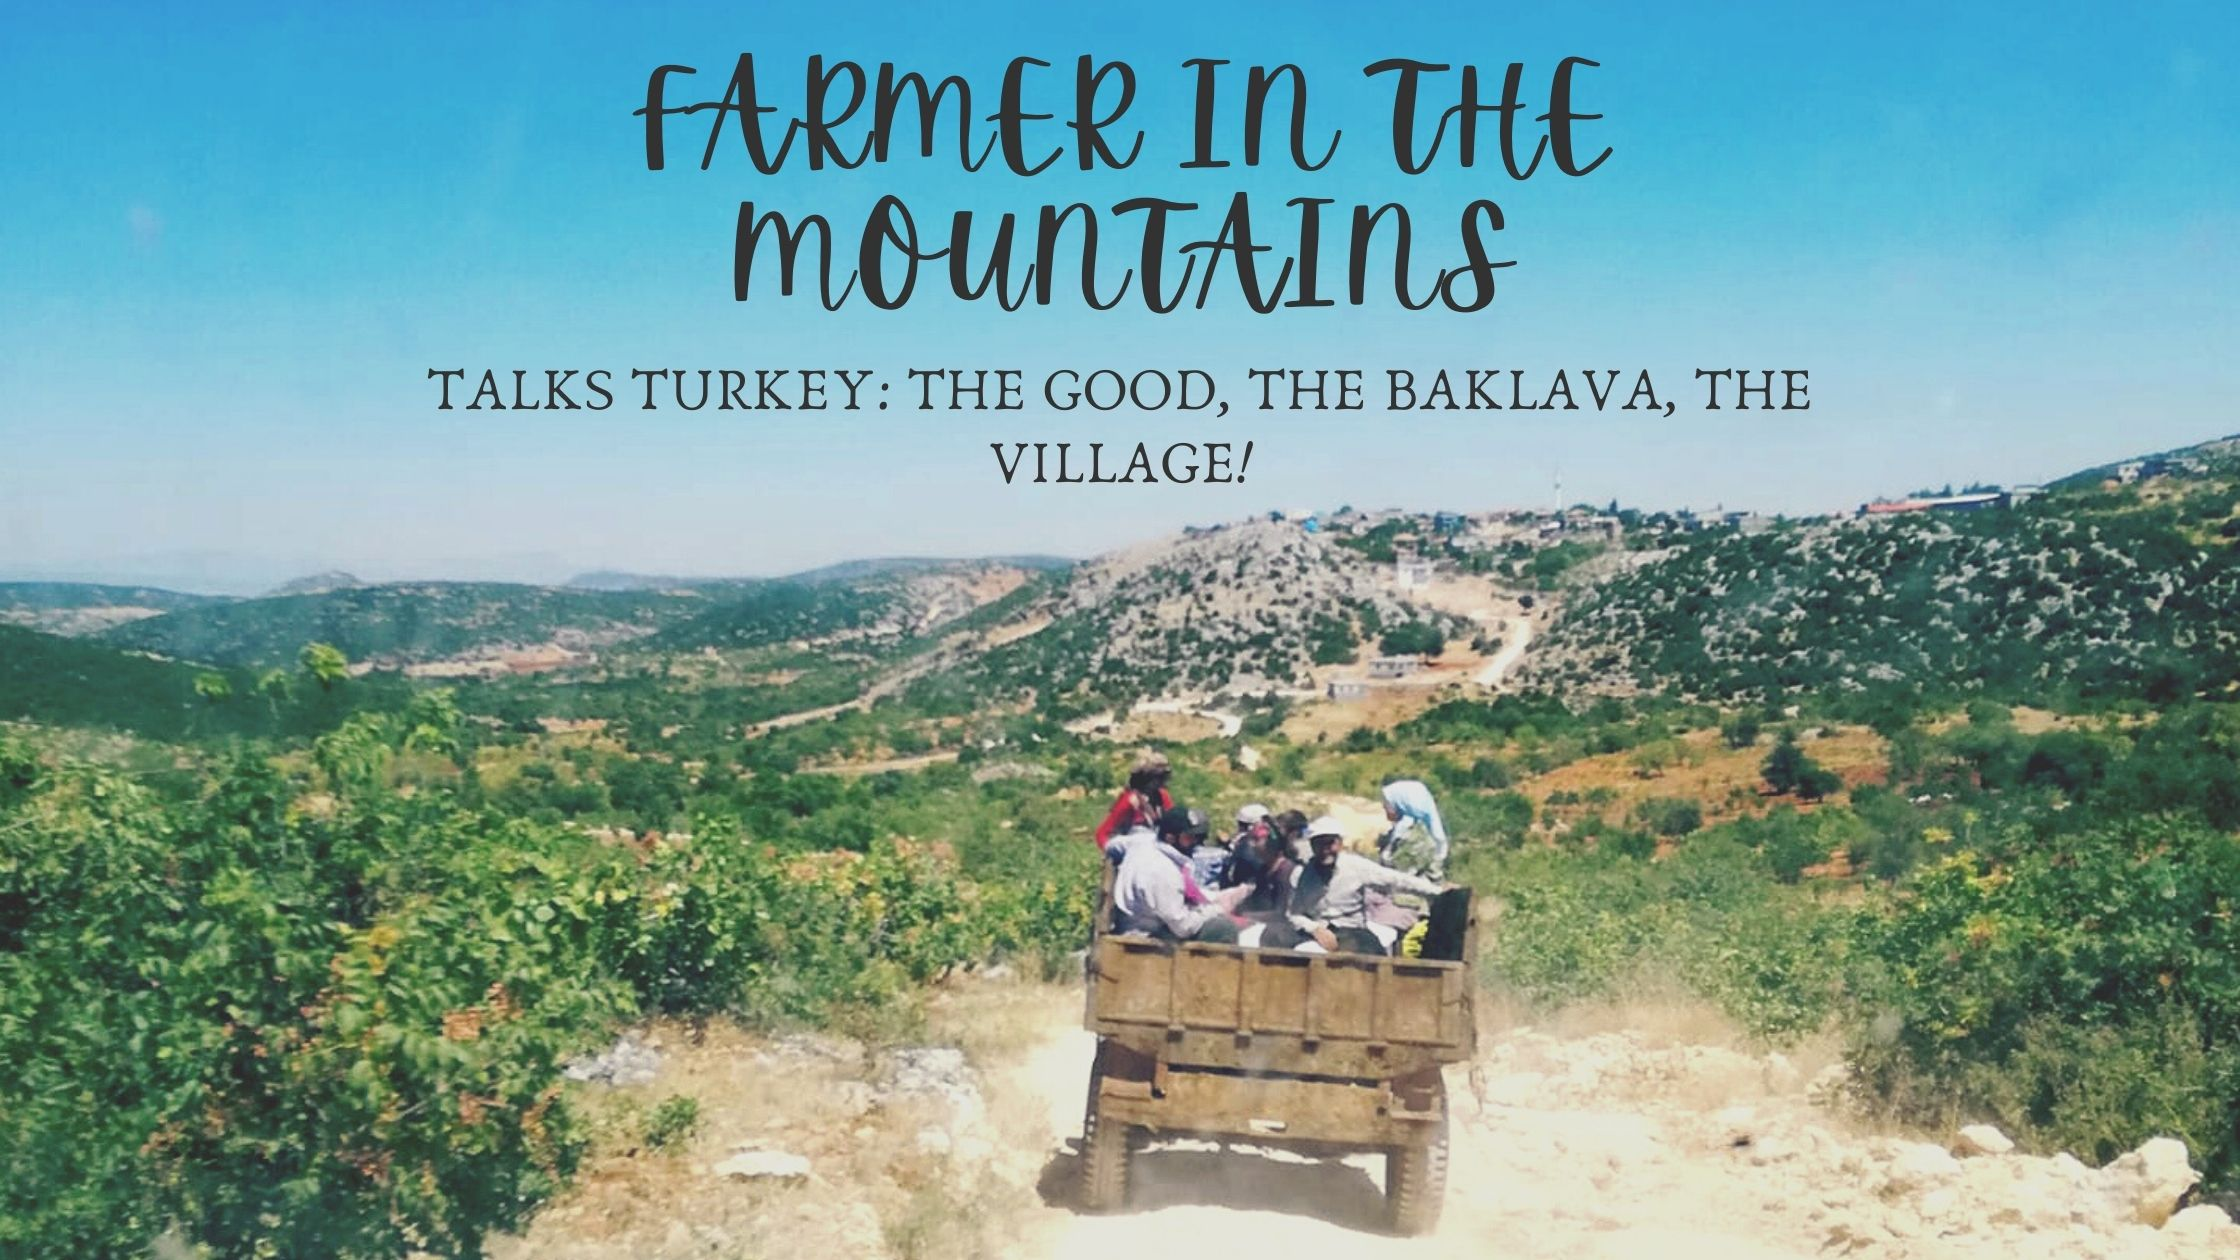 Blog header. Picture of rural gaziantep scene with tractor. Photo by Emma Işık. Text overlay reads: Farmer In The Mountains, Talks Turkey: The Good, The Baklava, The Village